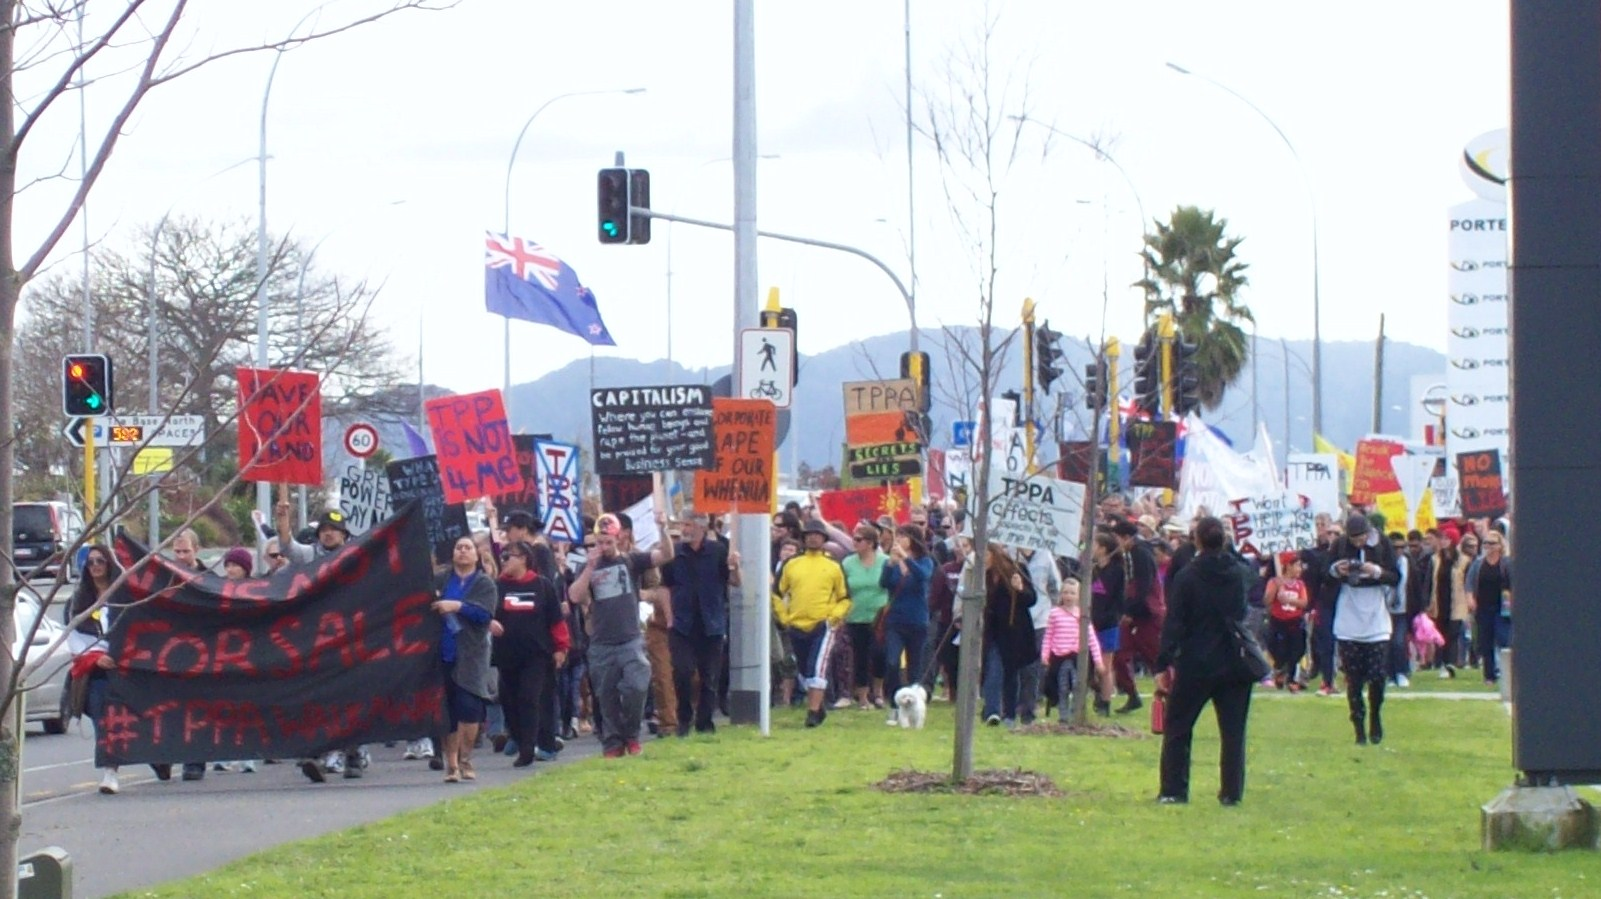 nz tppa protest